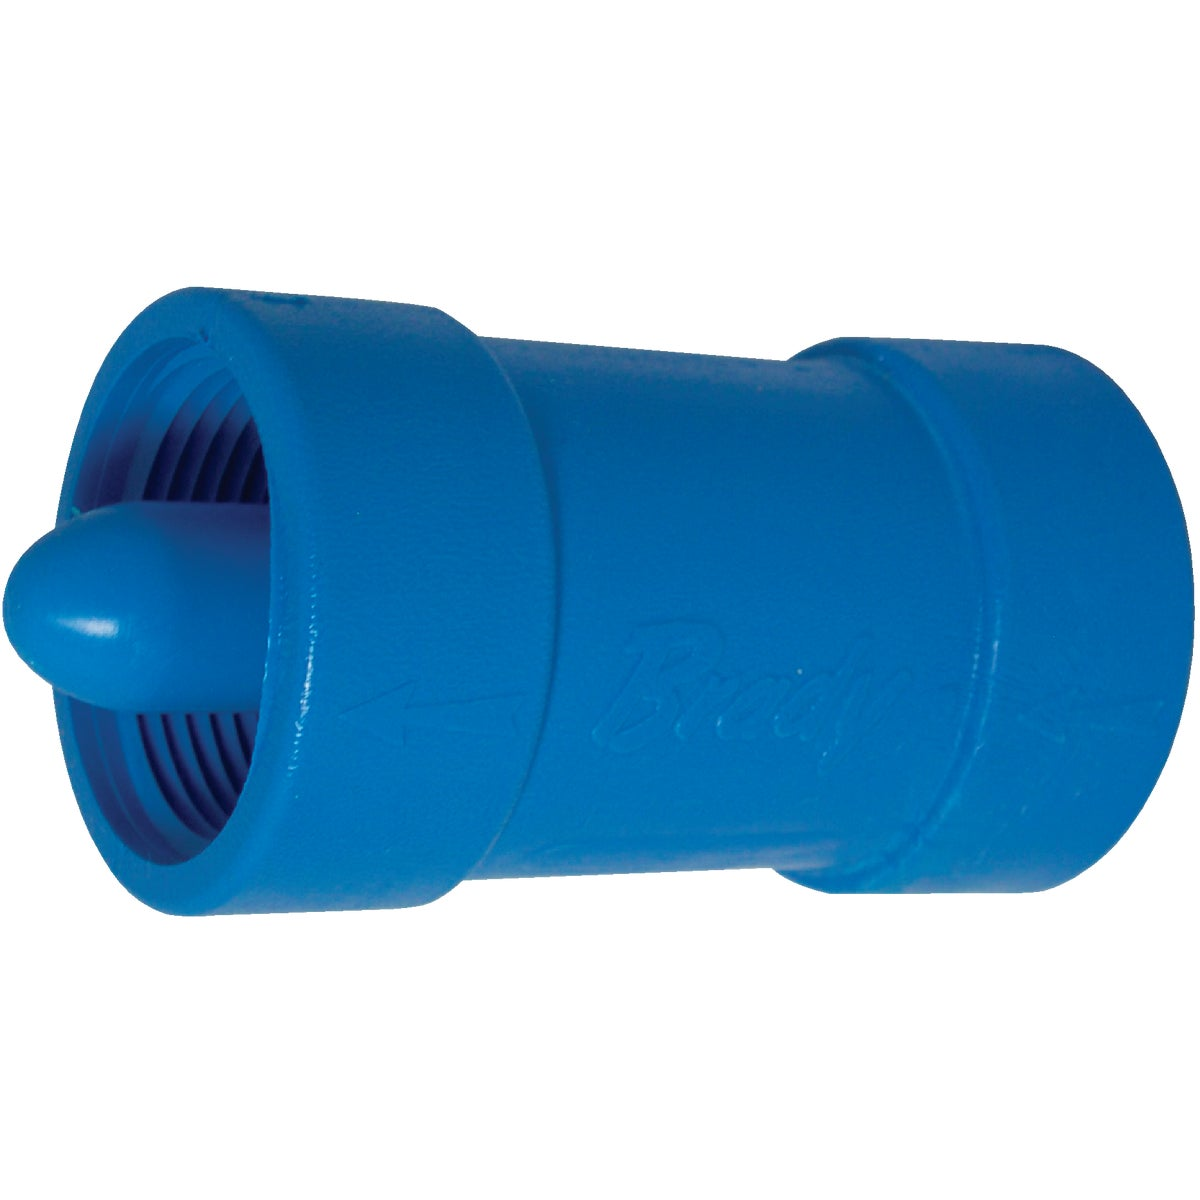 SPR LOADED CHECK VALVE - SLC-125 by Campbell Mfg Inc